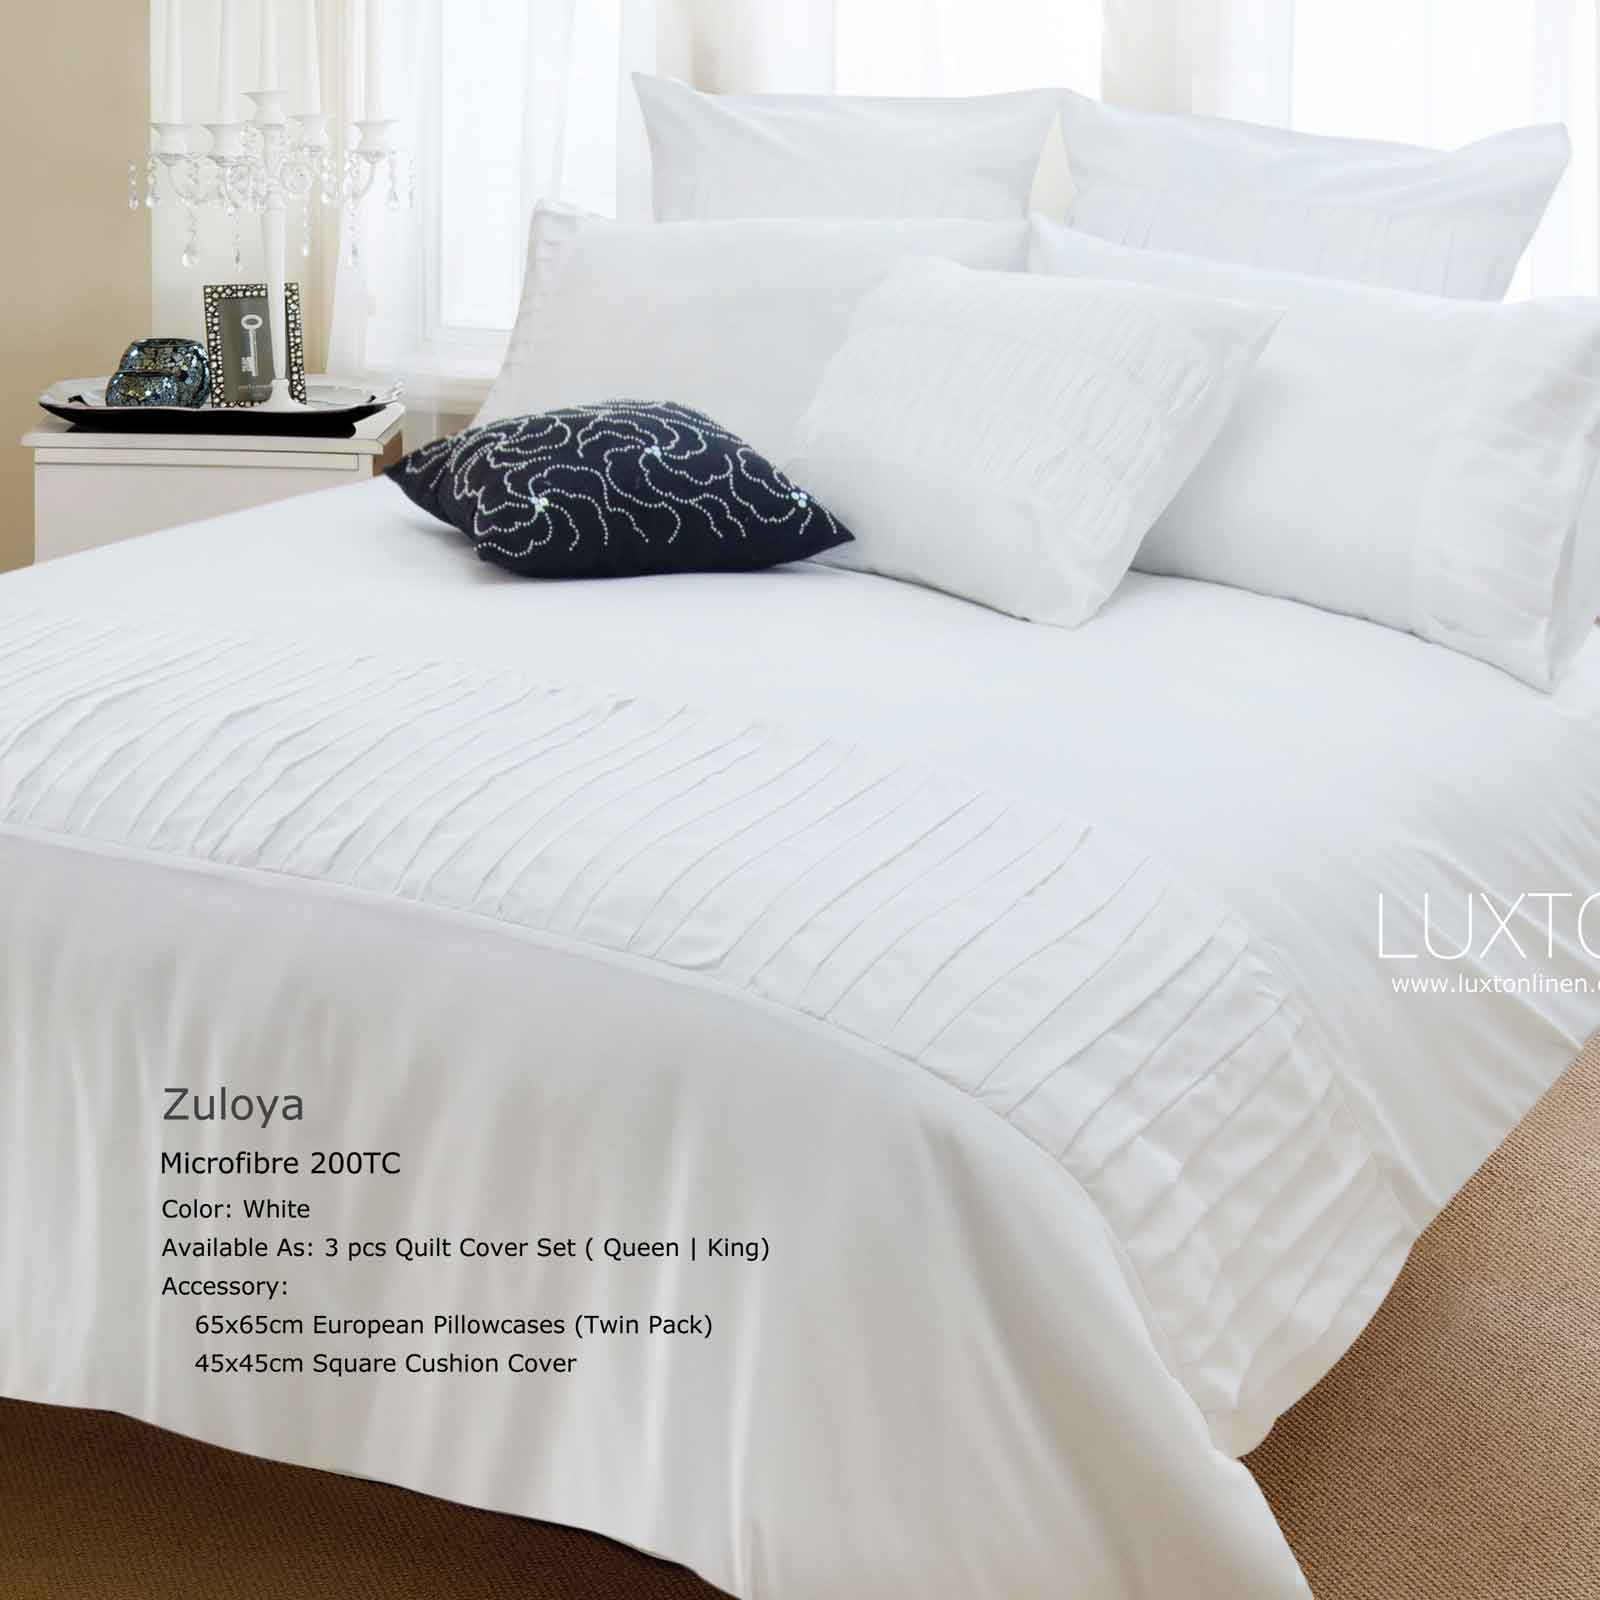 LUXTON-LINEN-King-Duvet-Quilt-Cover-Set-Zuloya-3pcs-Bed-Linen-Set-MC0013K